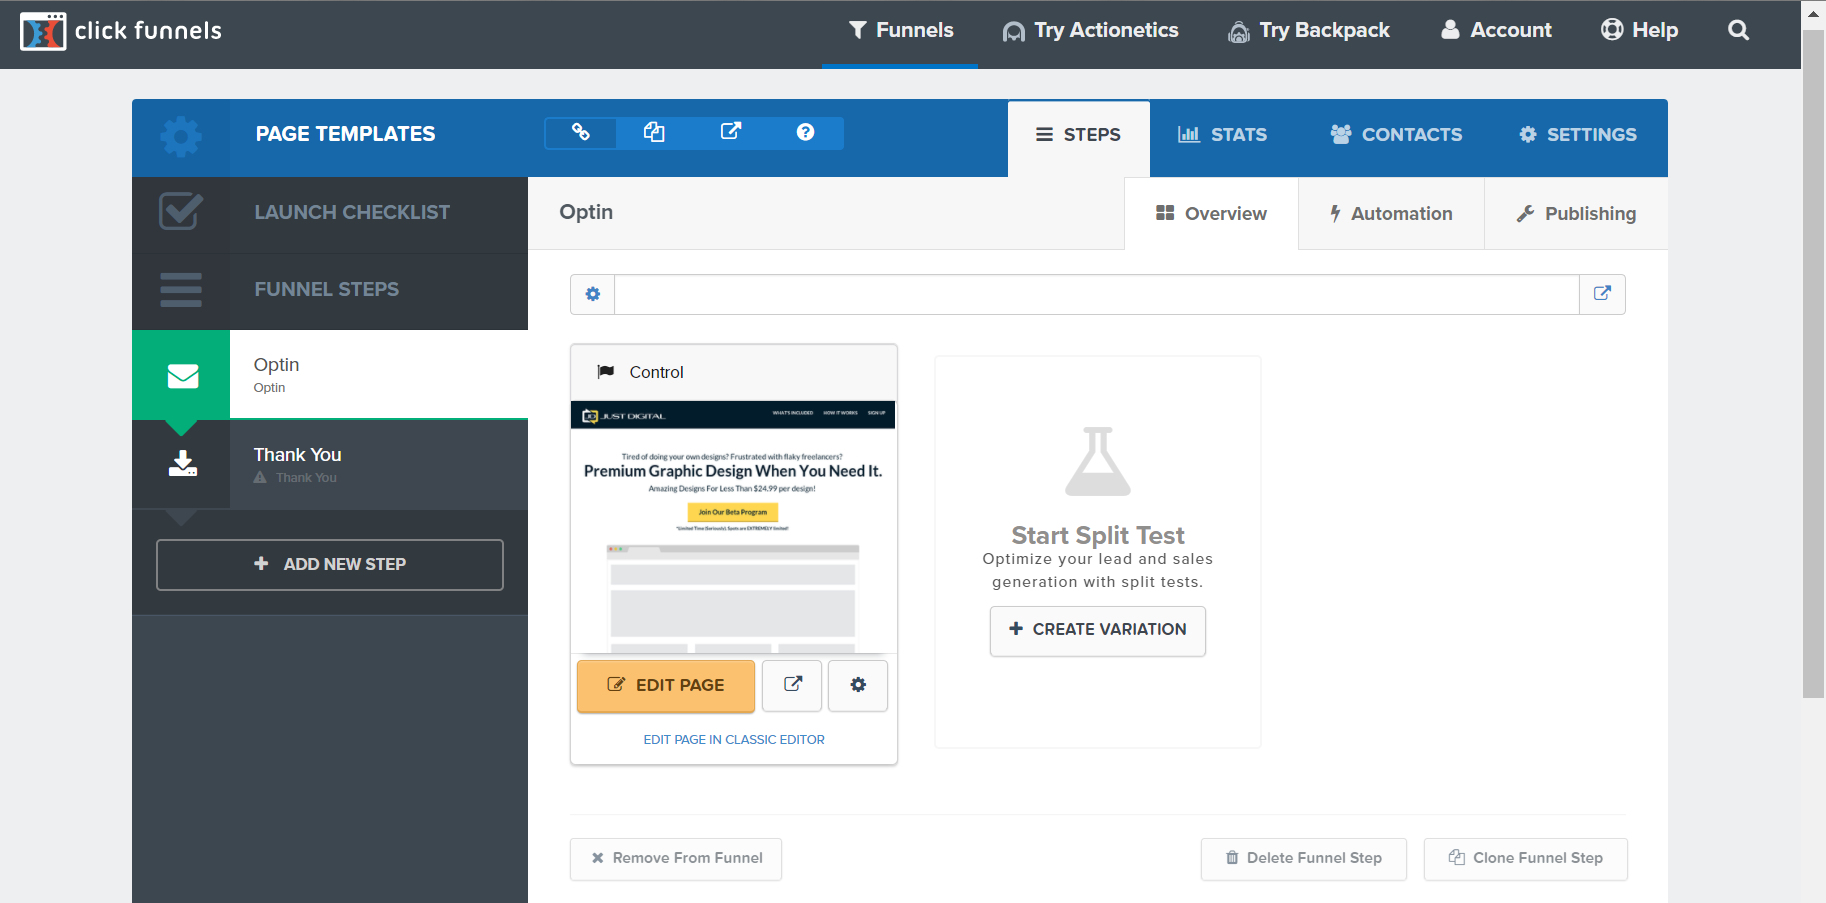 How To Use Similarwebs With Clickfunnels